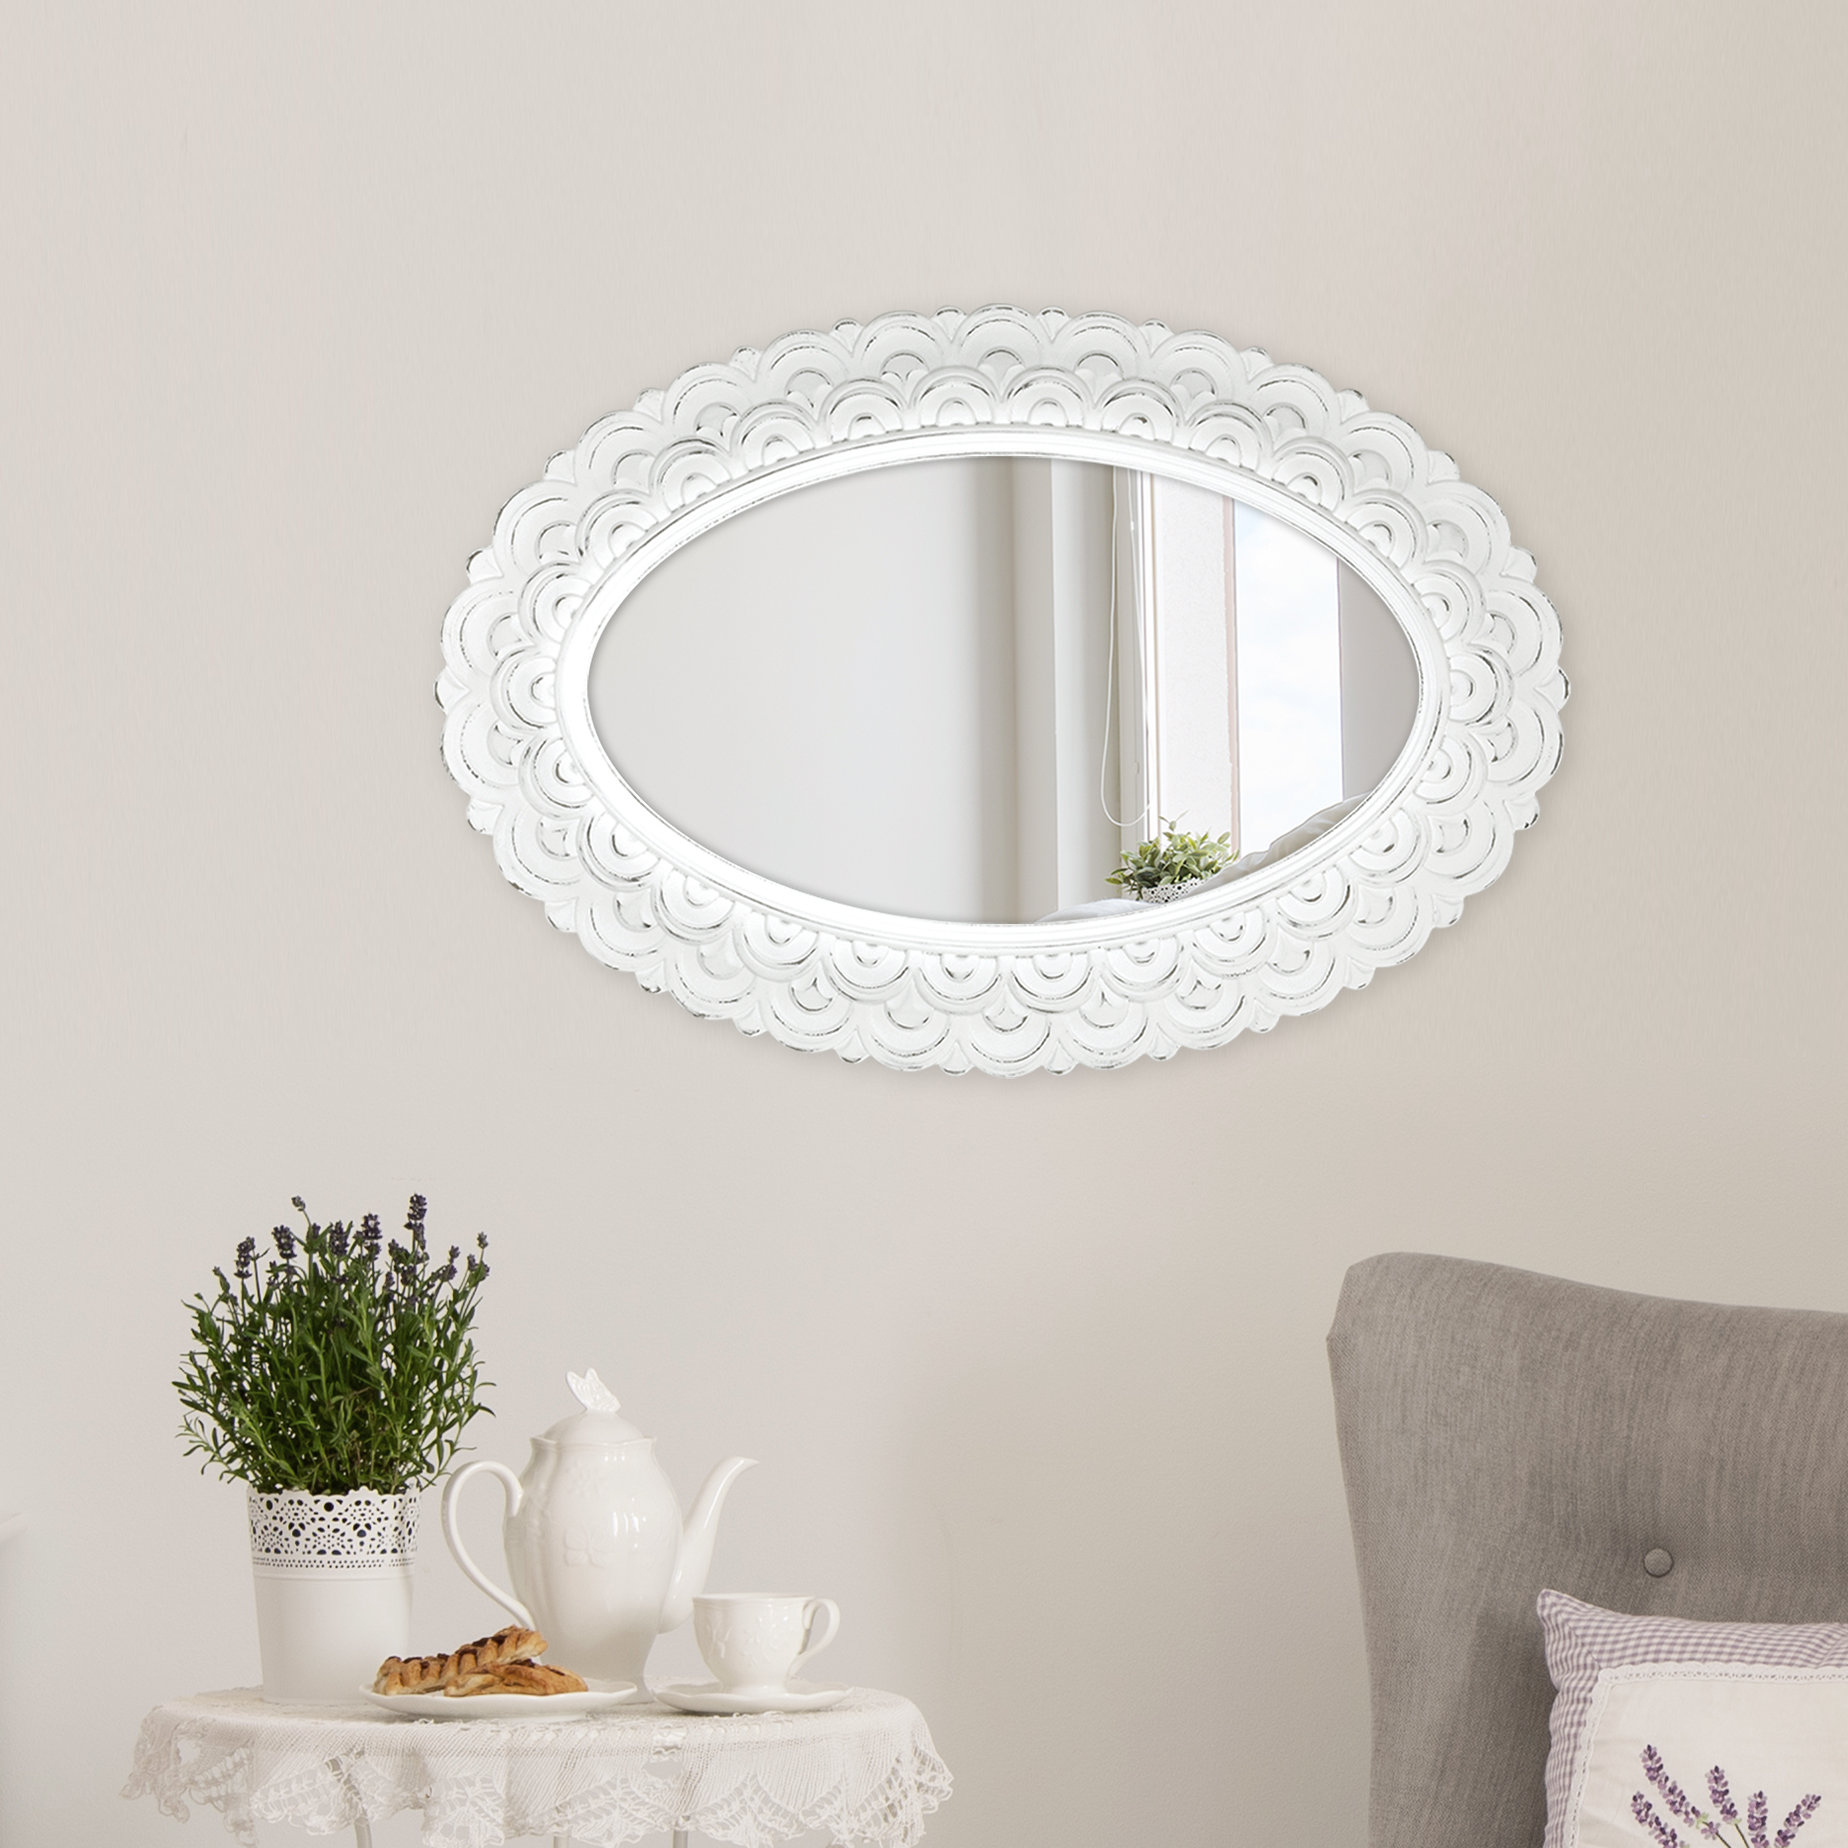 Most Recent Carballo Oval Wall Accent Mirror For Point Reyes Molten Round Wall Mirrors (View 16 of 20)